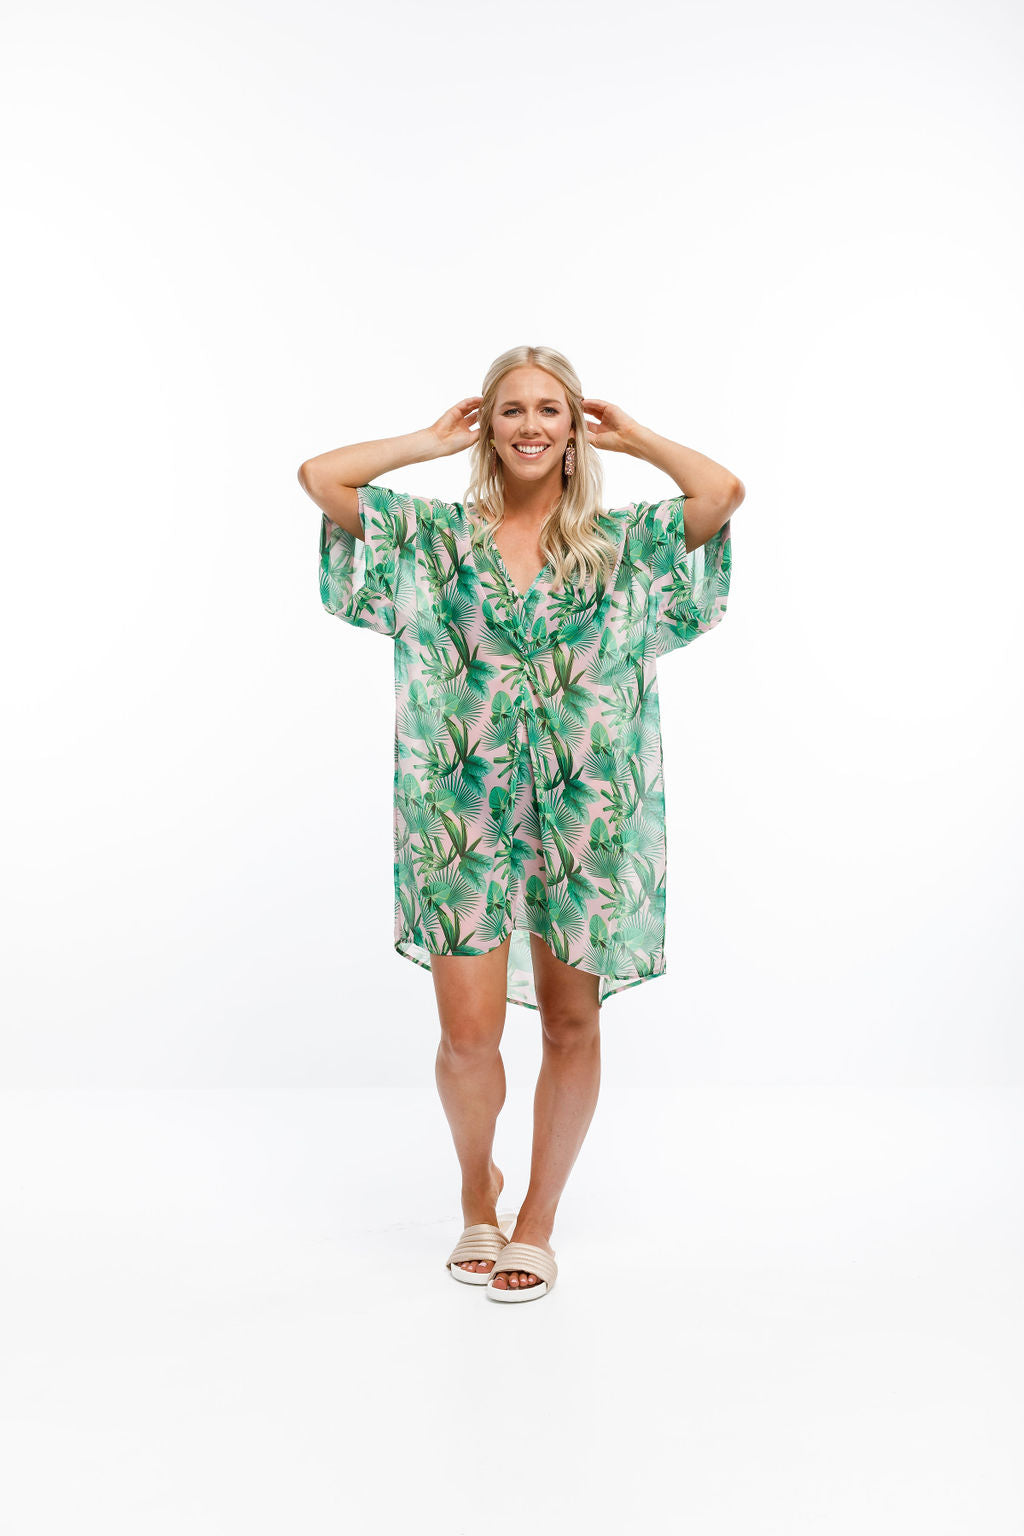 NGAIO DRESS - Tropical Palm Print (incl. slip)